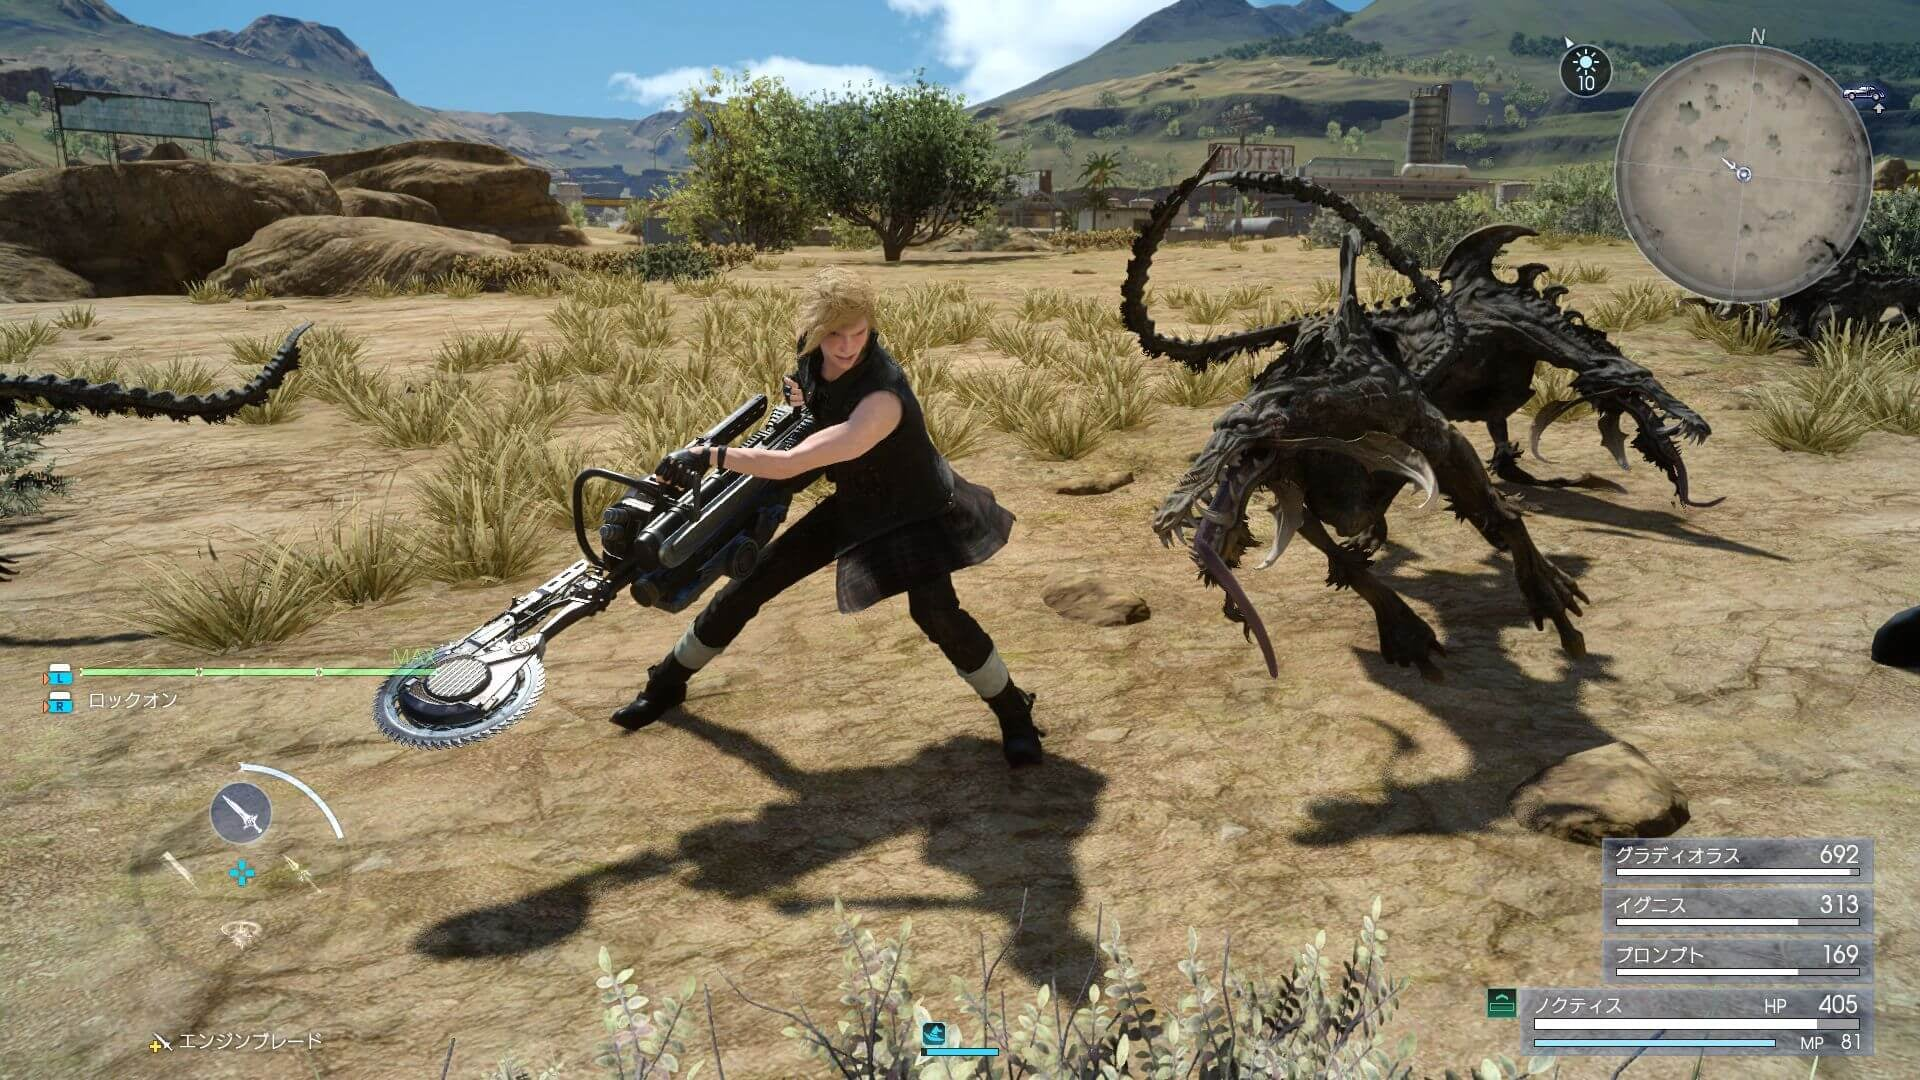 on day 5 final fantasy xv strings together combos sub weapons 2